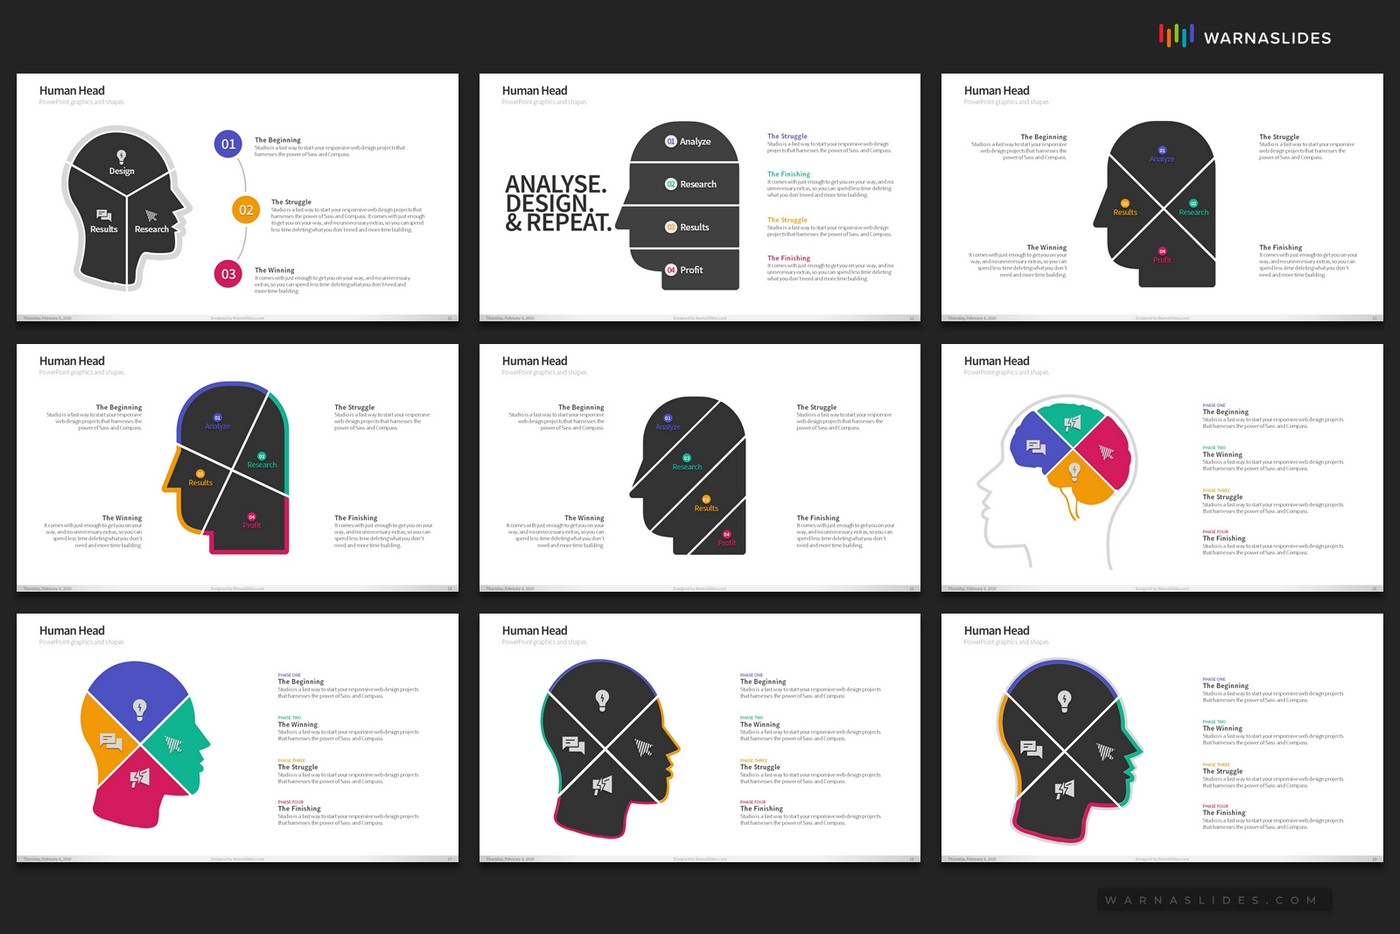 Human-Head-Ideas-Brainstorm-PowerPoint-Template-for-Business-Pitch-Deck-Professional-Creative-PowerPoint-Icons-007